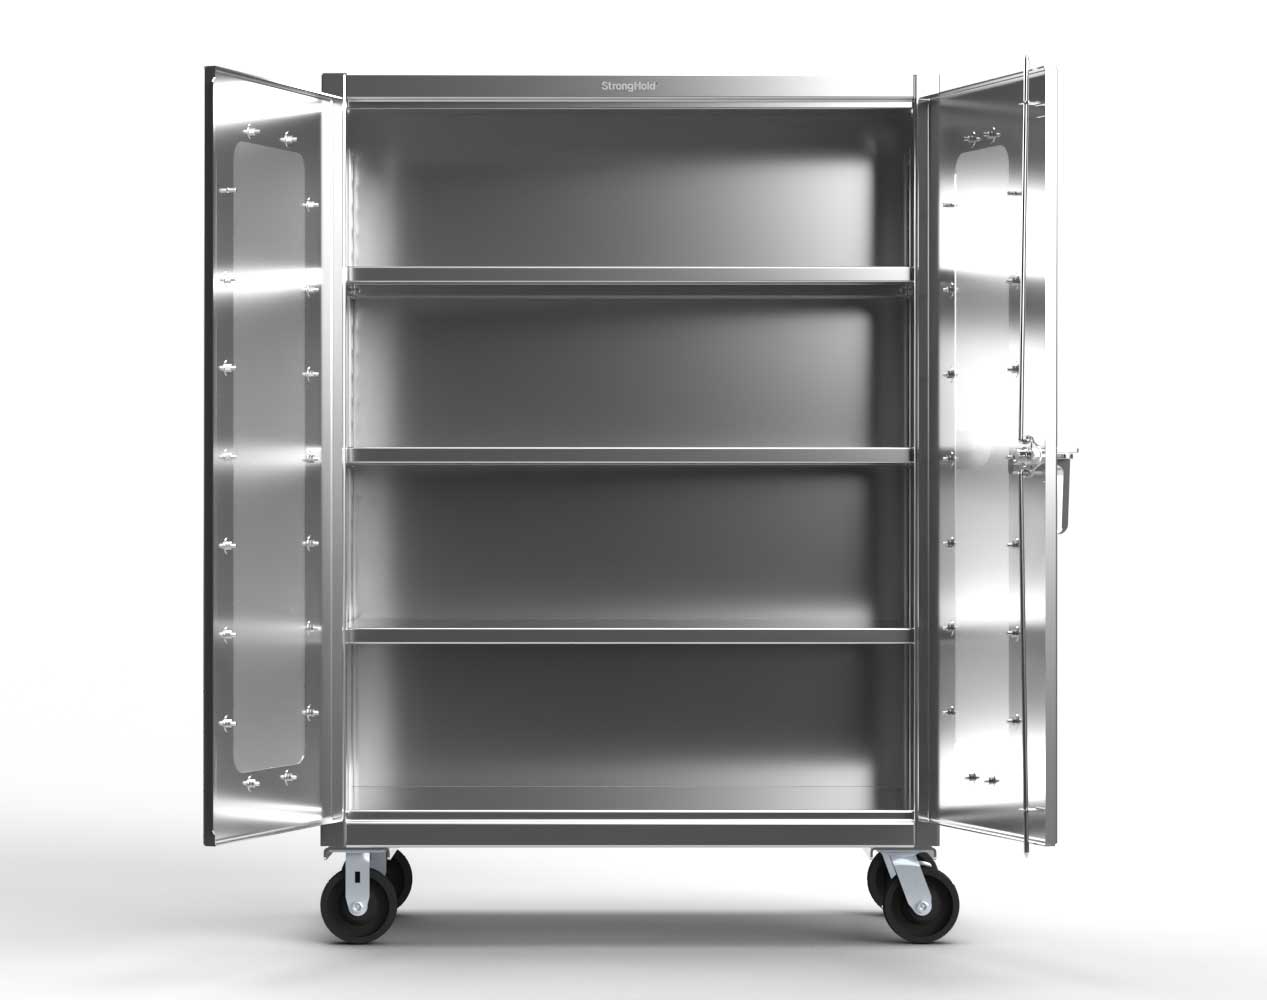 Extreme Duty 12 GA Stainless Steel Mobile Medical Cabinet with Cylinder Lock, 2 Shelves – 36 In. W x 24 In. D x 44 In. H